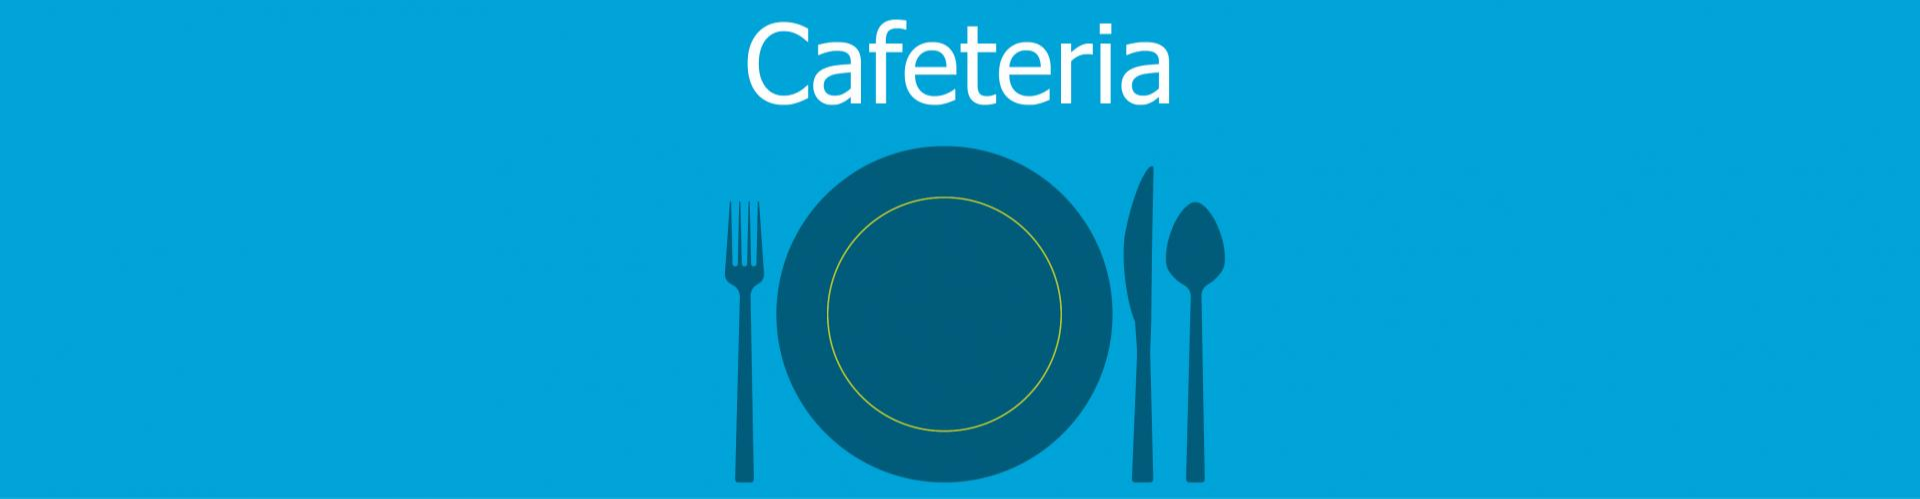 Cafeteria Banner